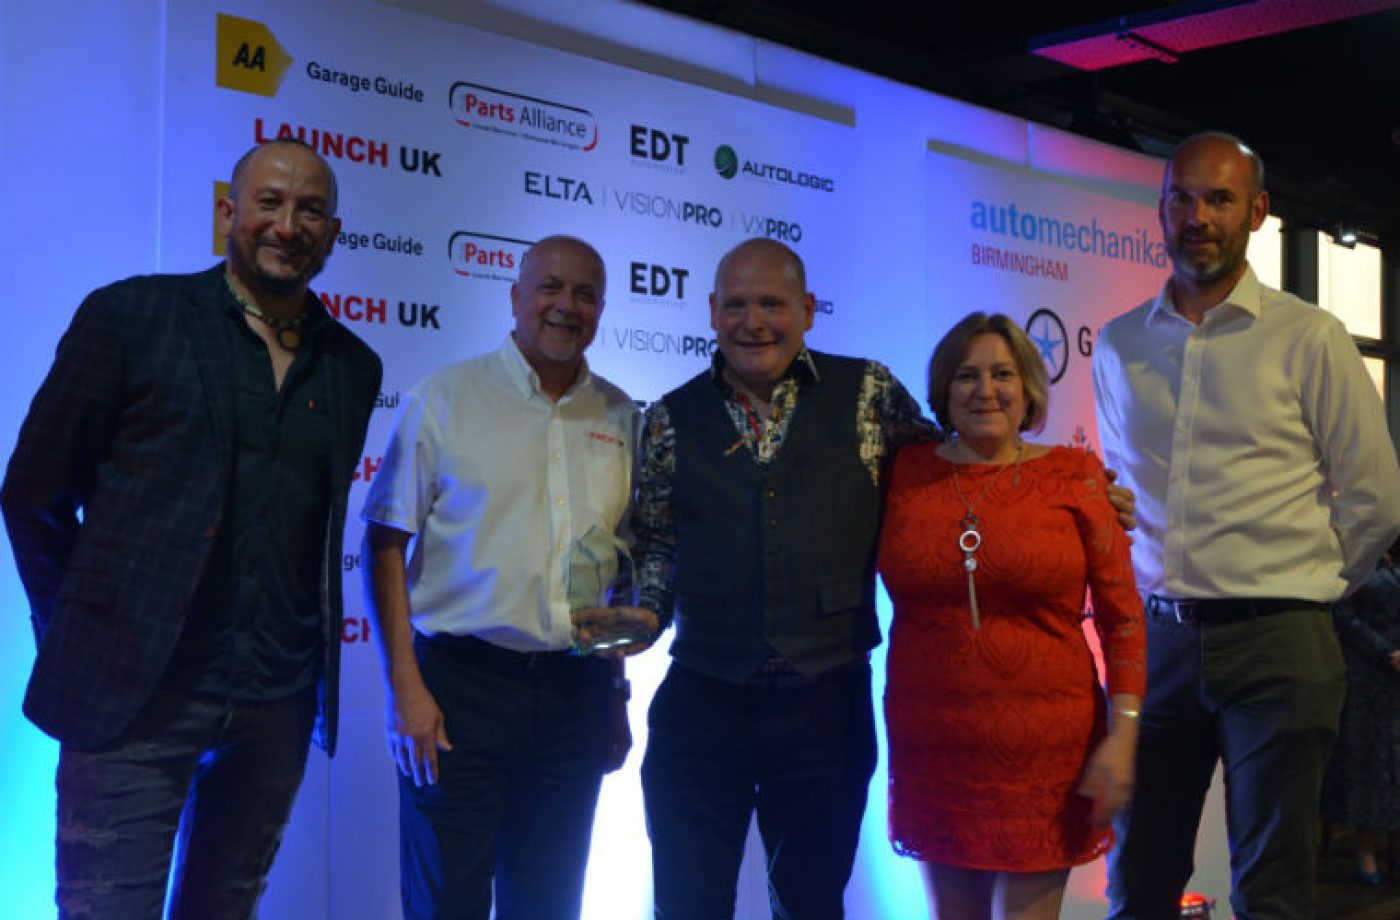 The Garage Whitburn gets special congratulations following awards evening